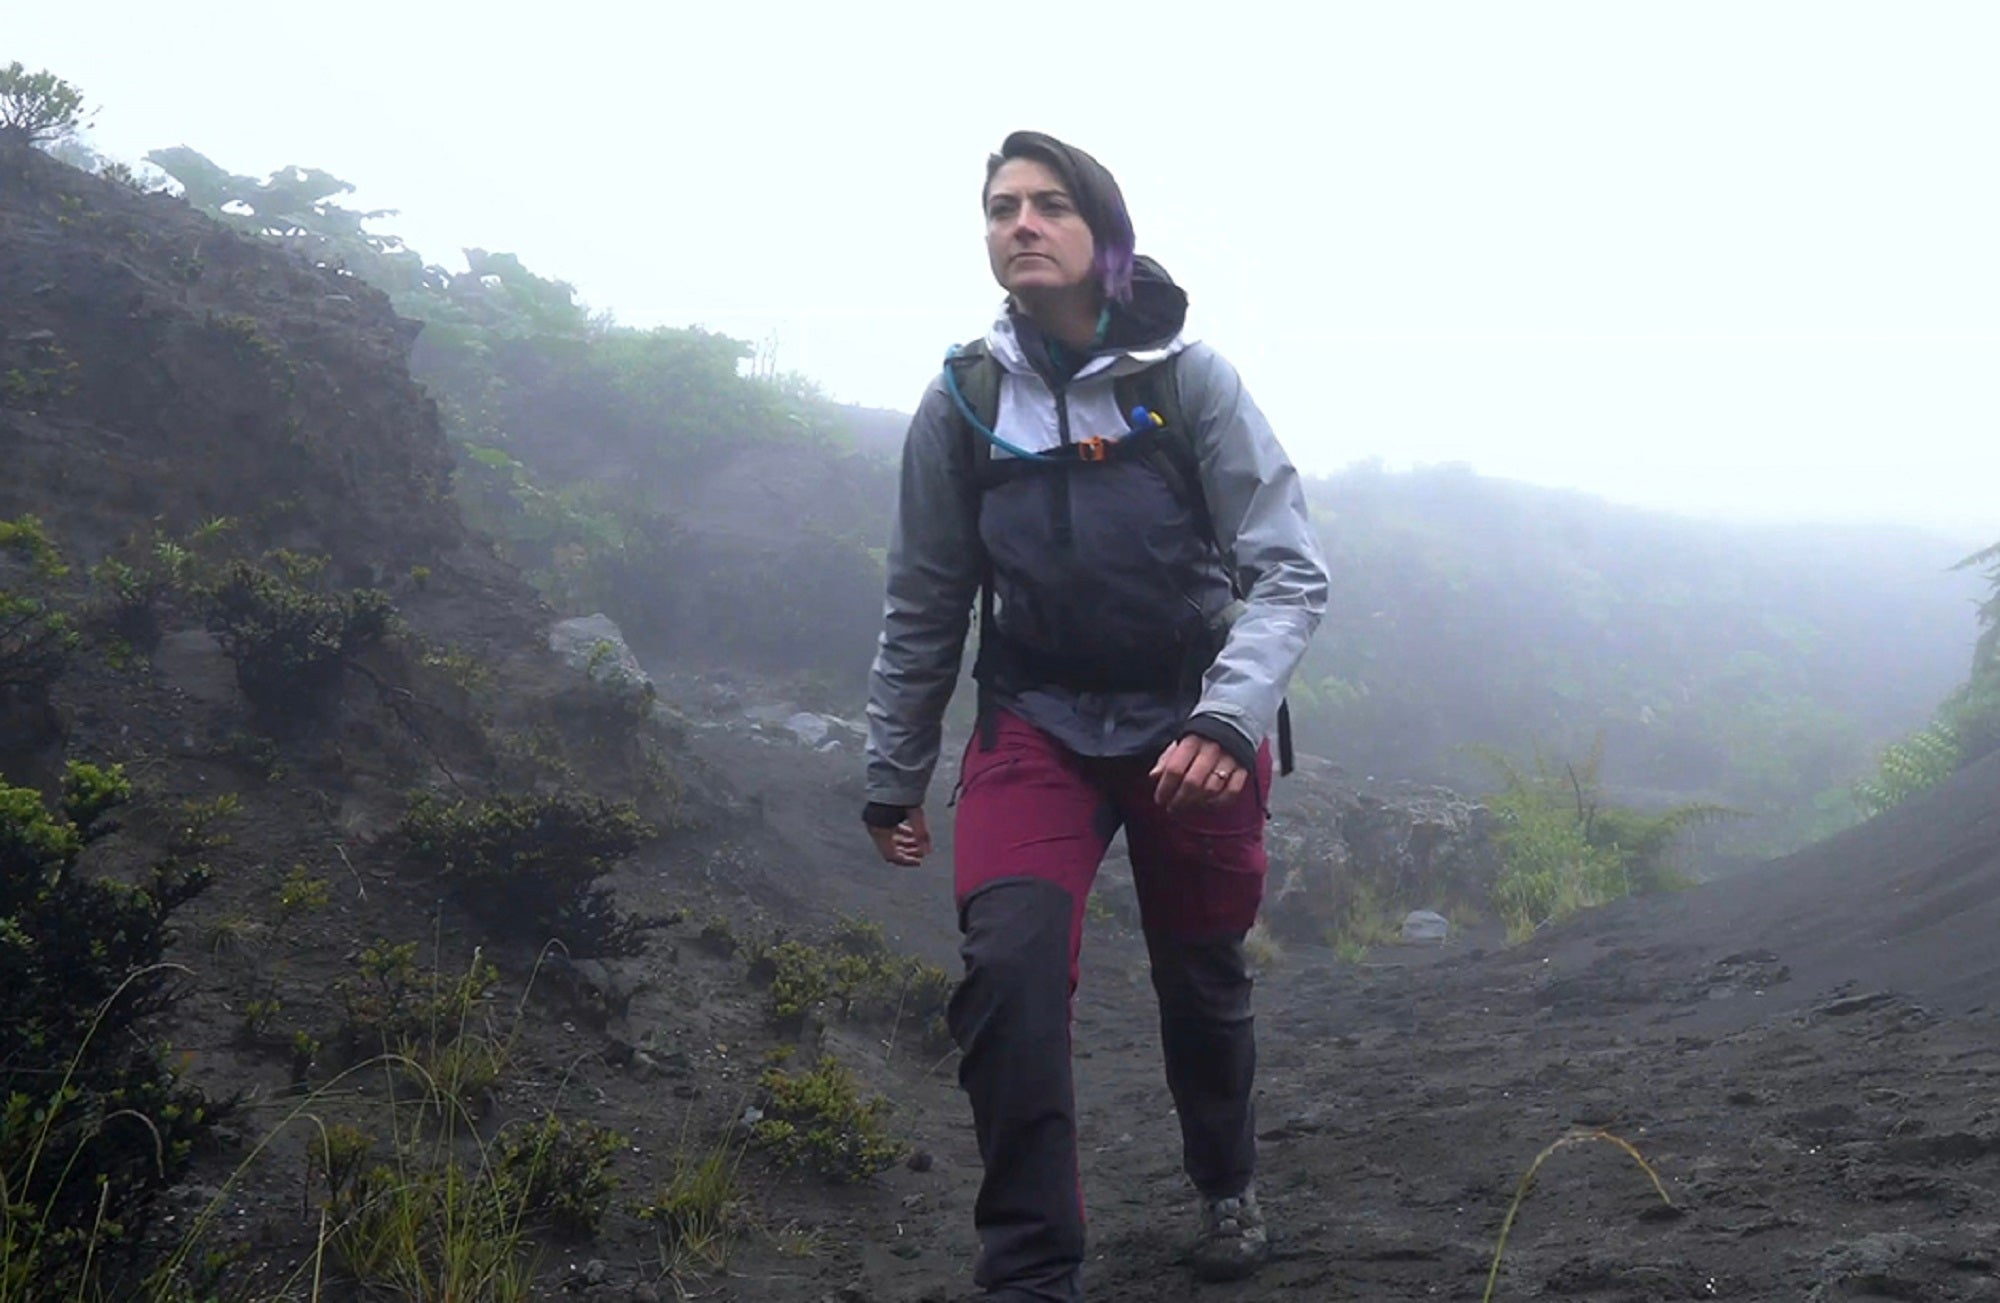 Kayla Iacovino hikes up a volcano as part of her NASA research